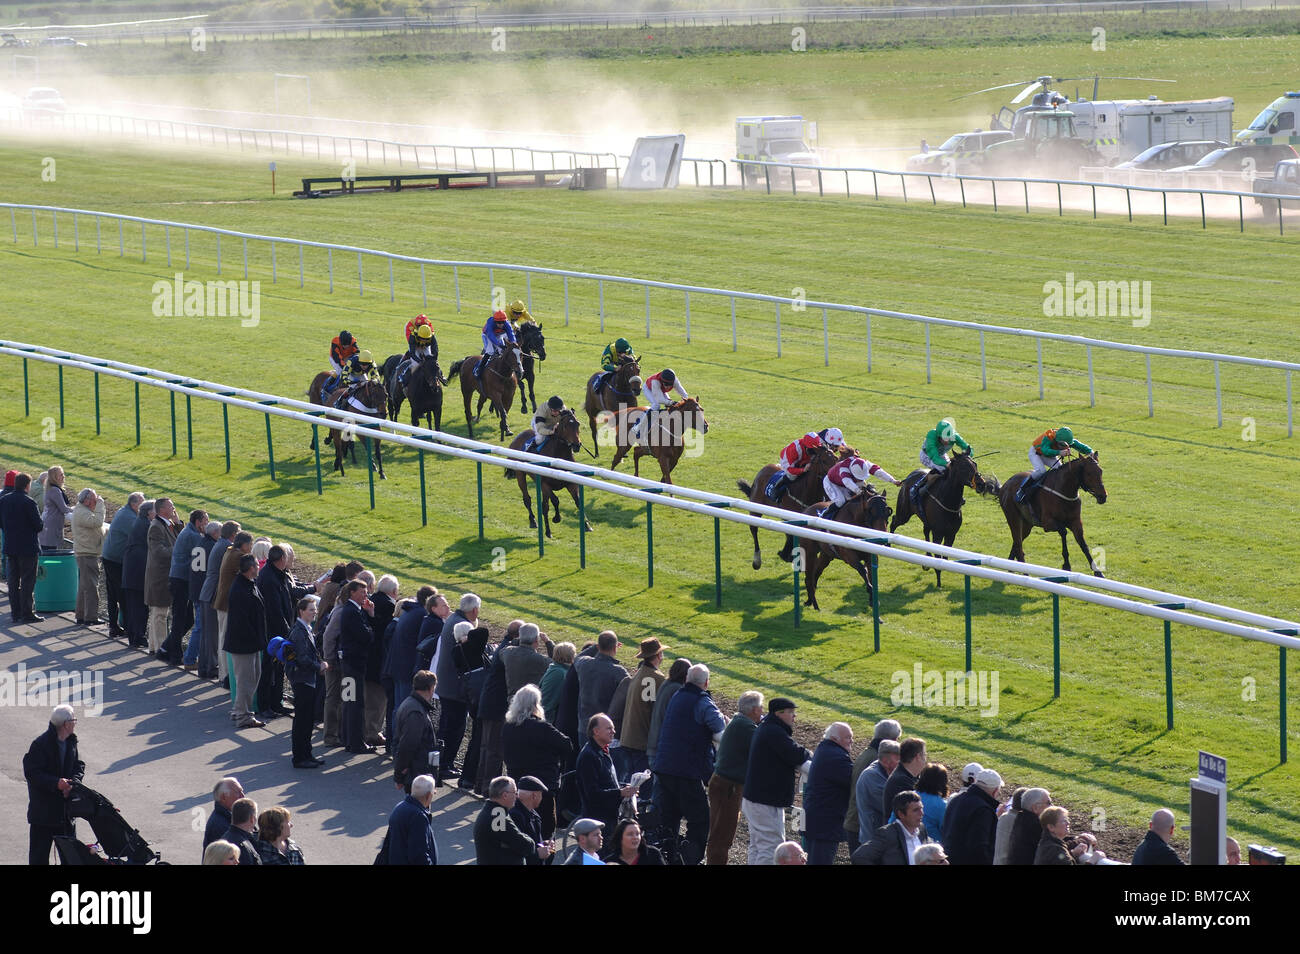 Horse race on the flat at Warwick Races, UK - Stock Image